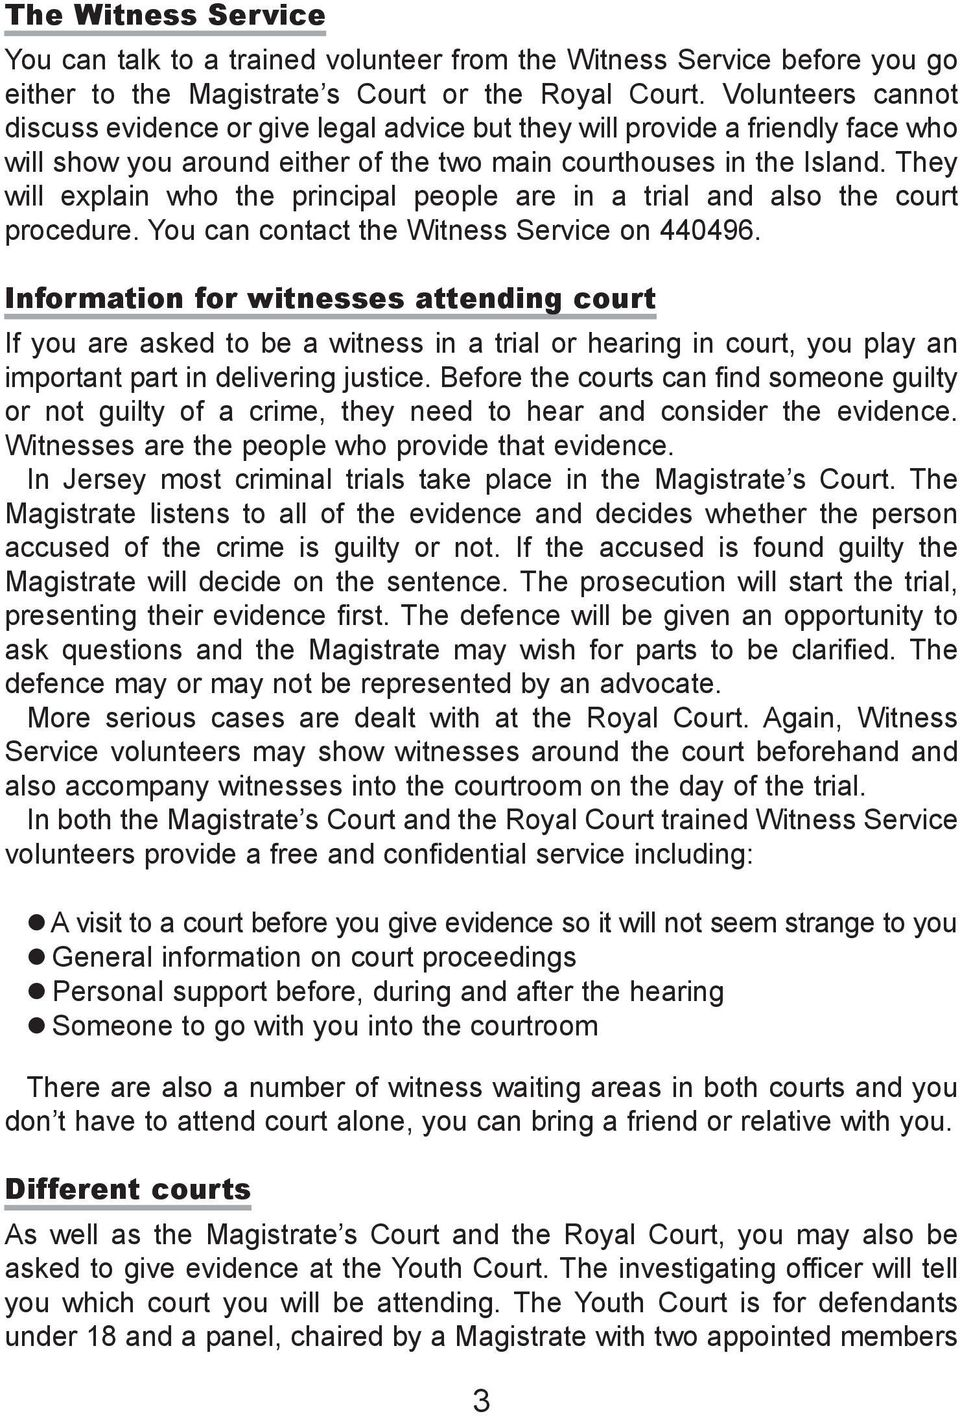 They will explain who the principal people are in a trial and also the court procedure. You can contact the Witness Service on 440496.